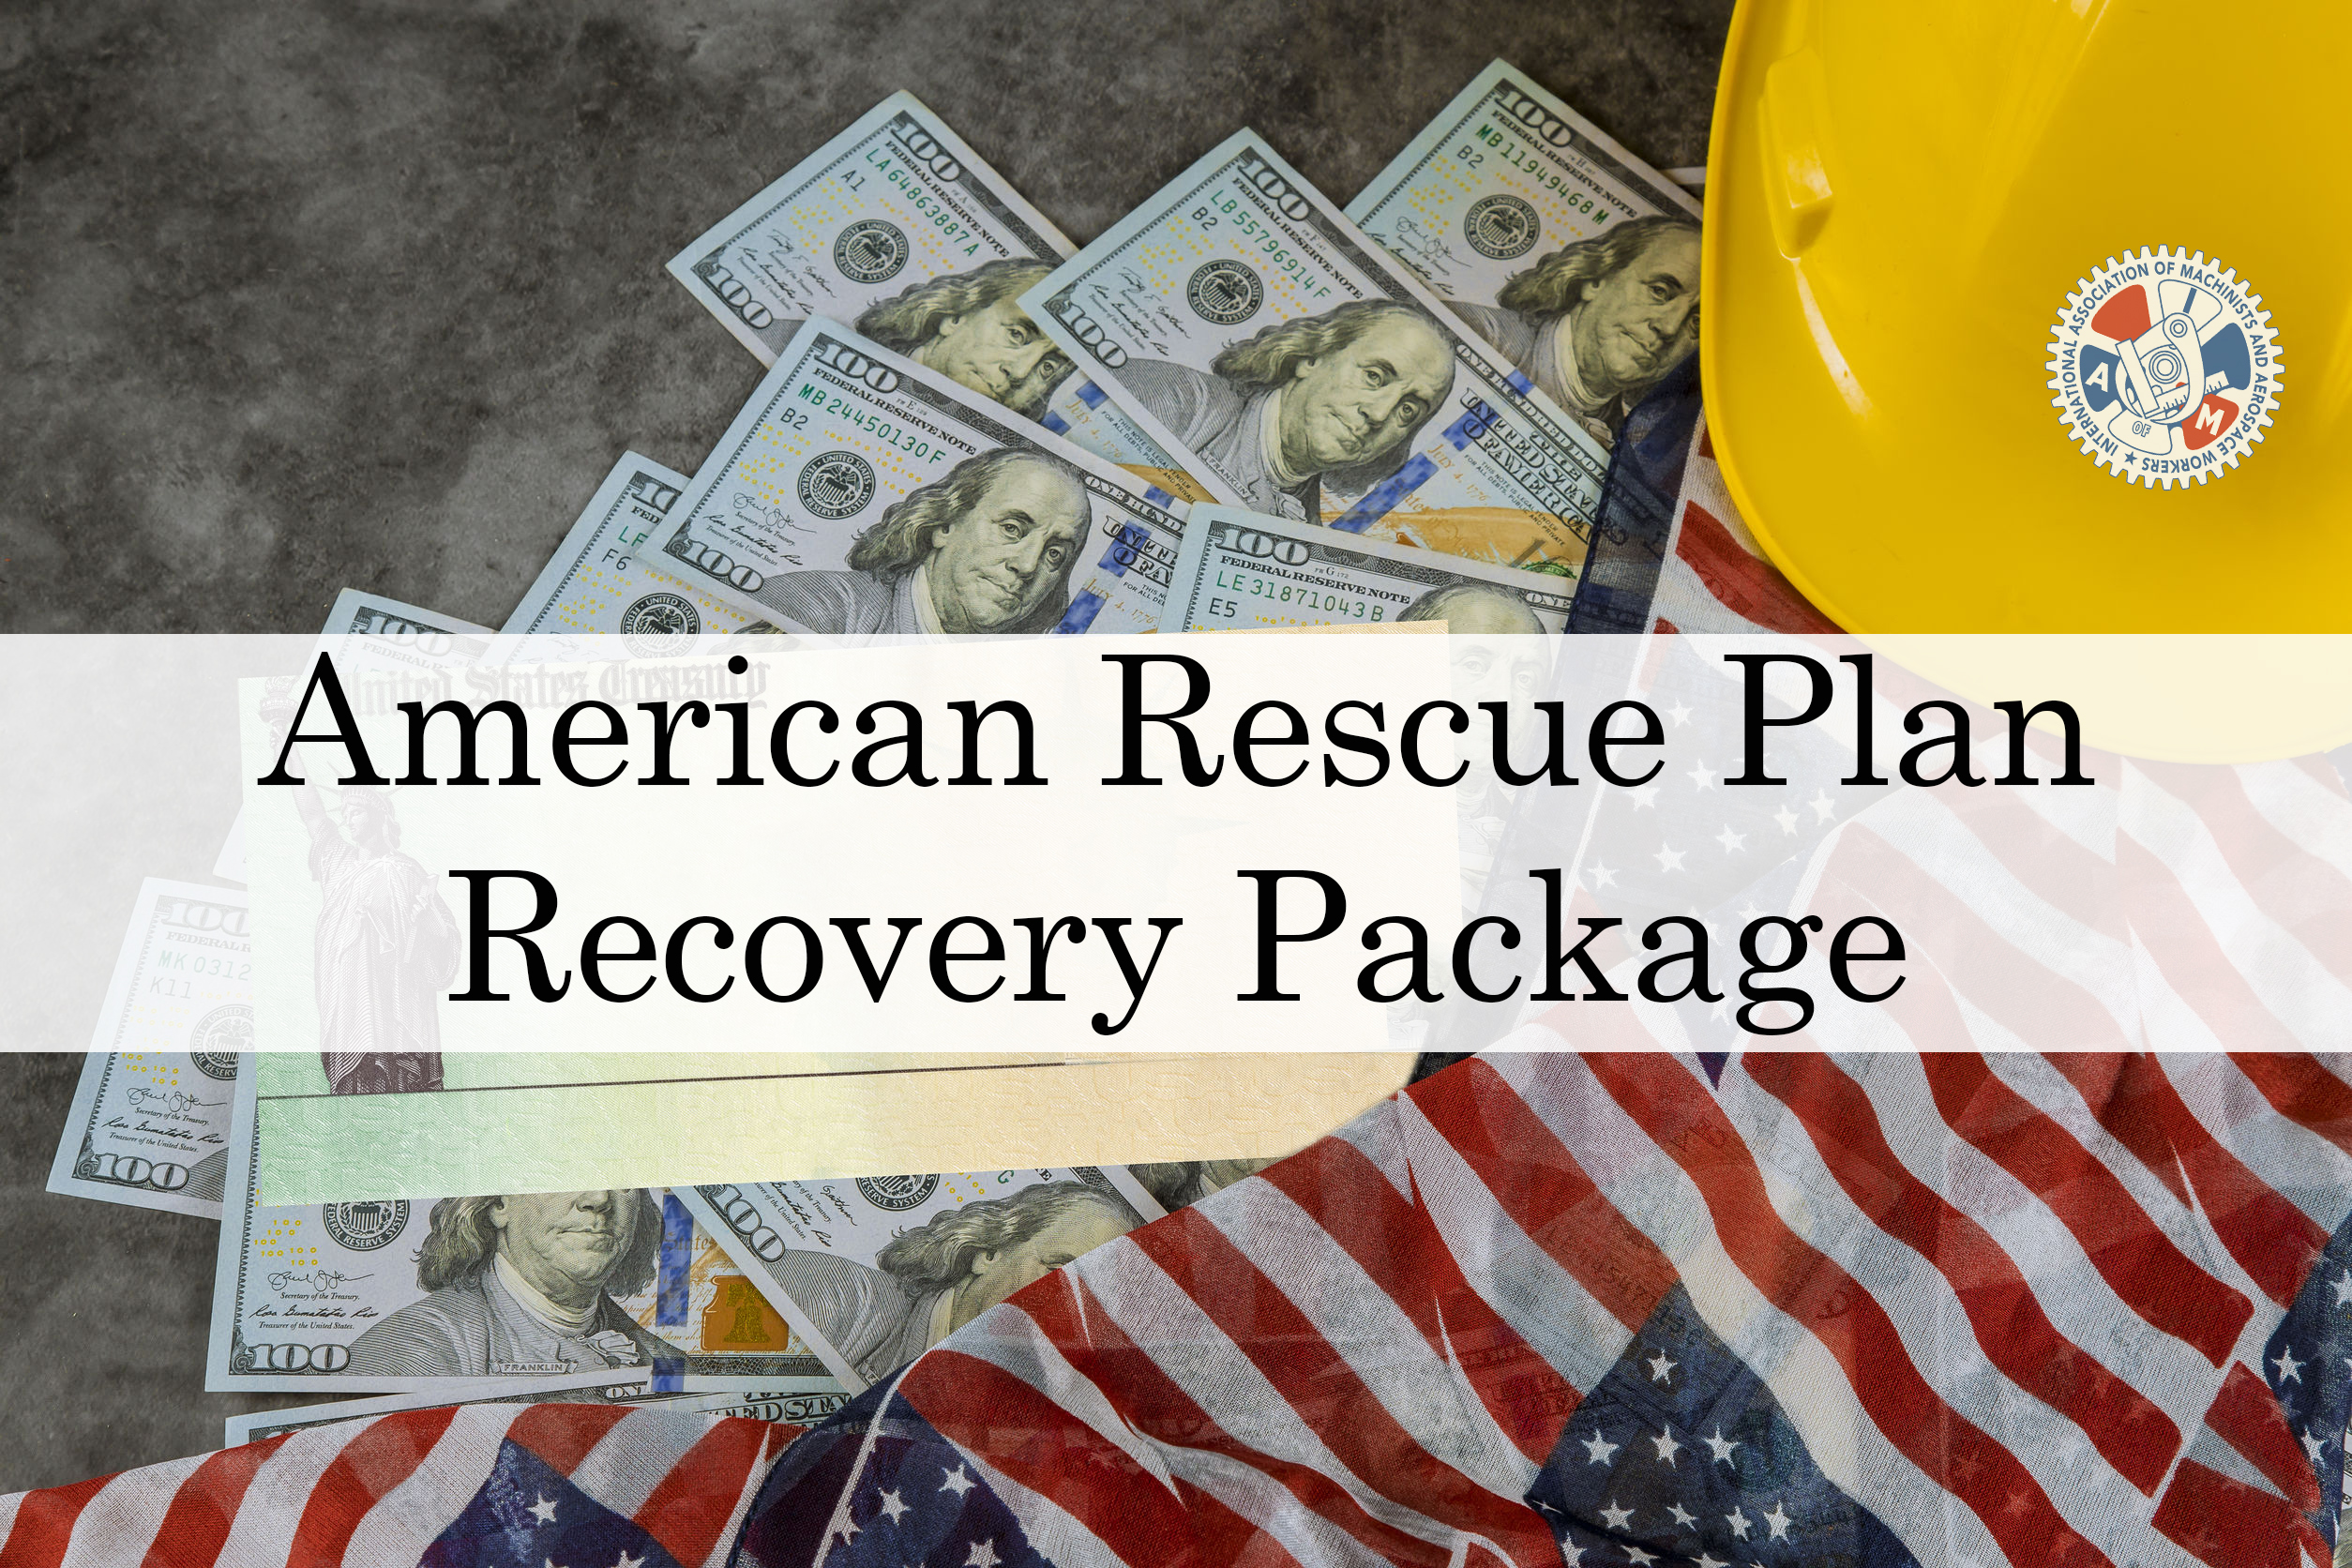 Machinists Union Strongly Supports the American Rescue Plan Recovery Package